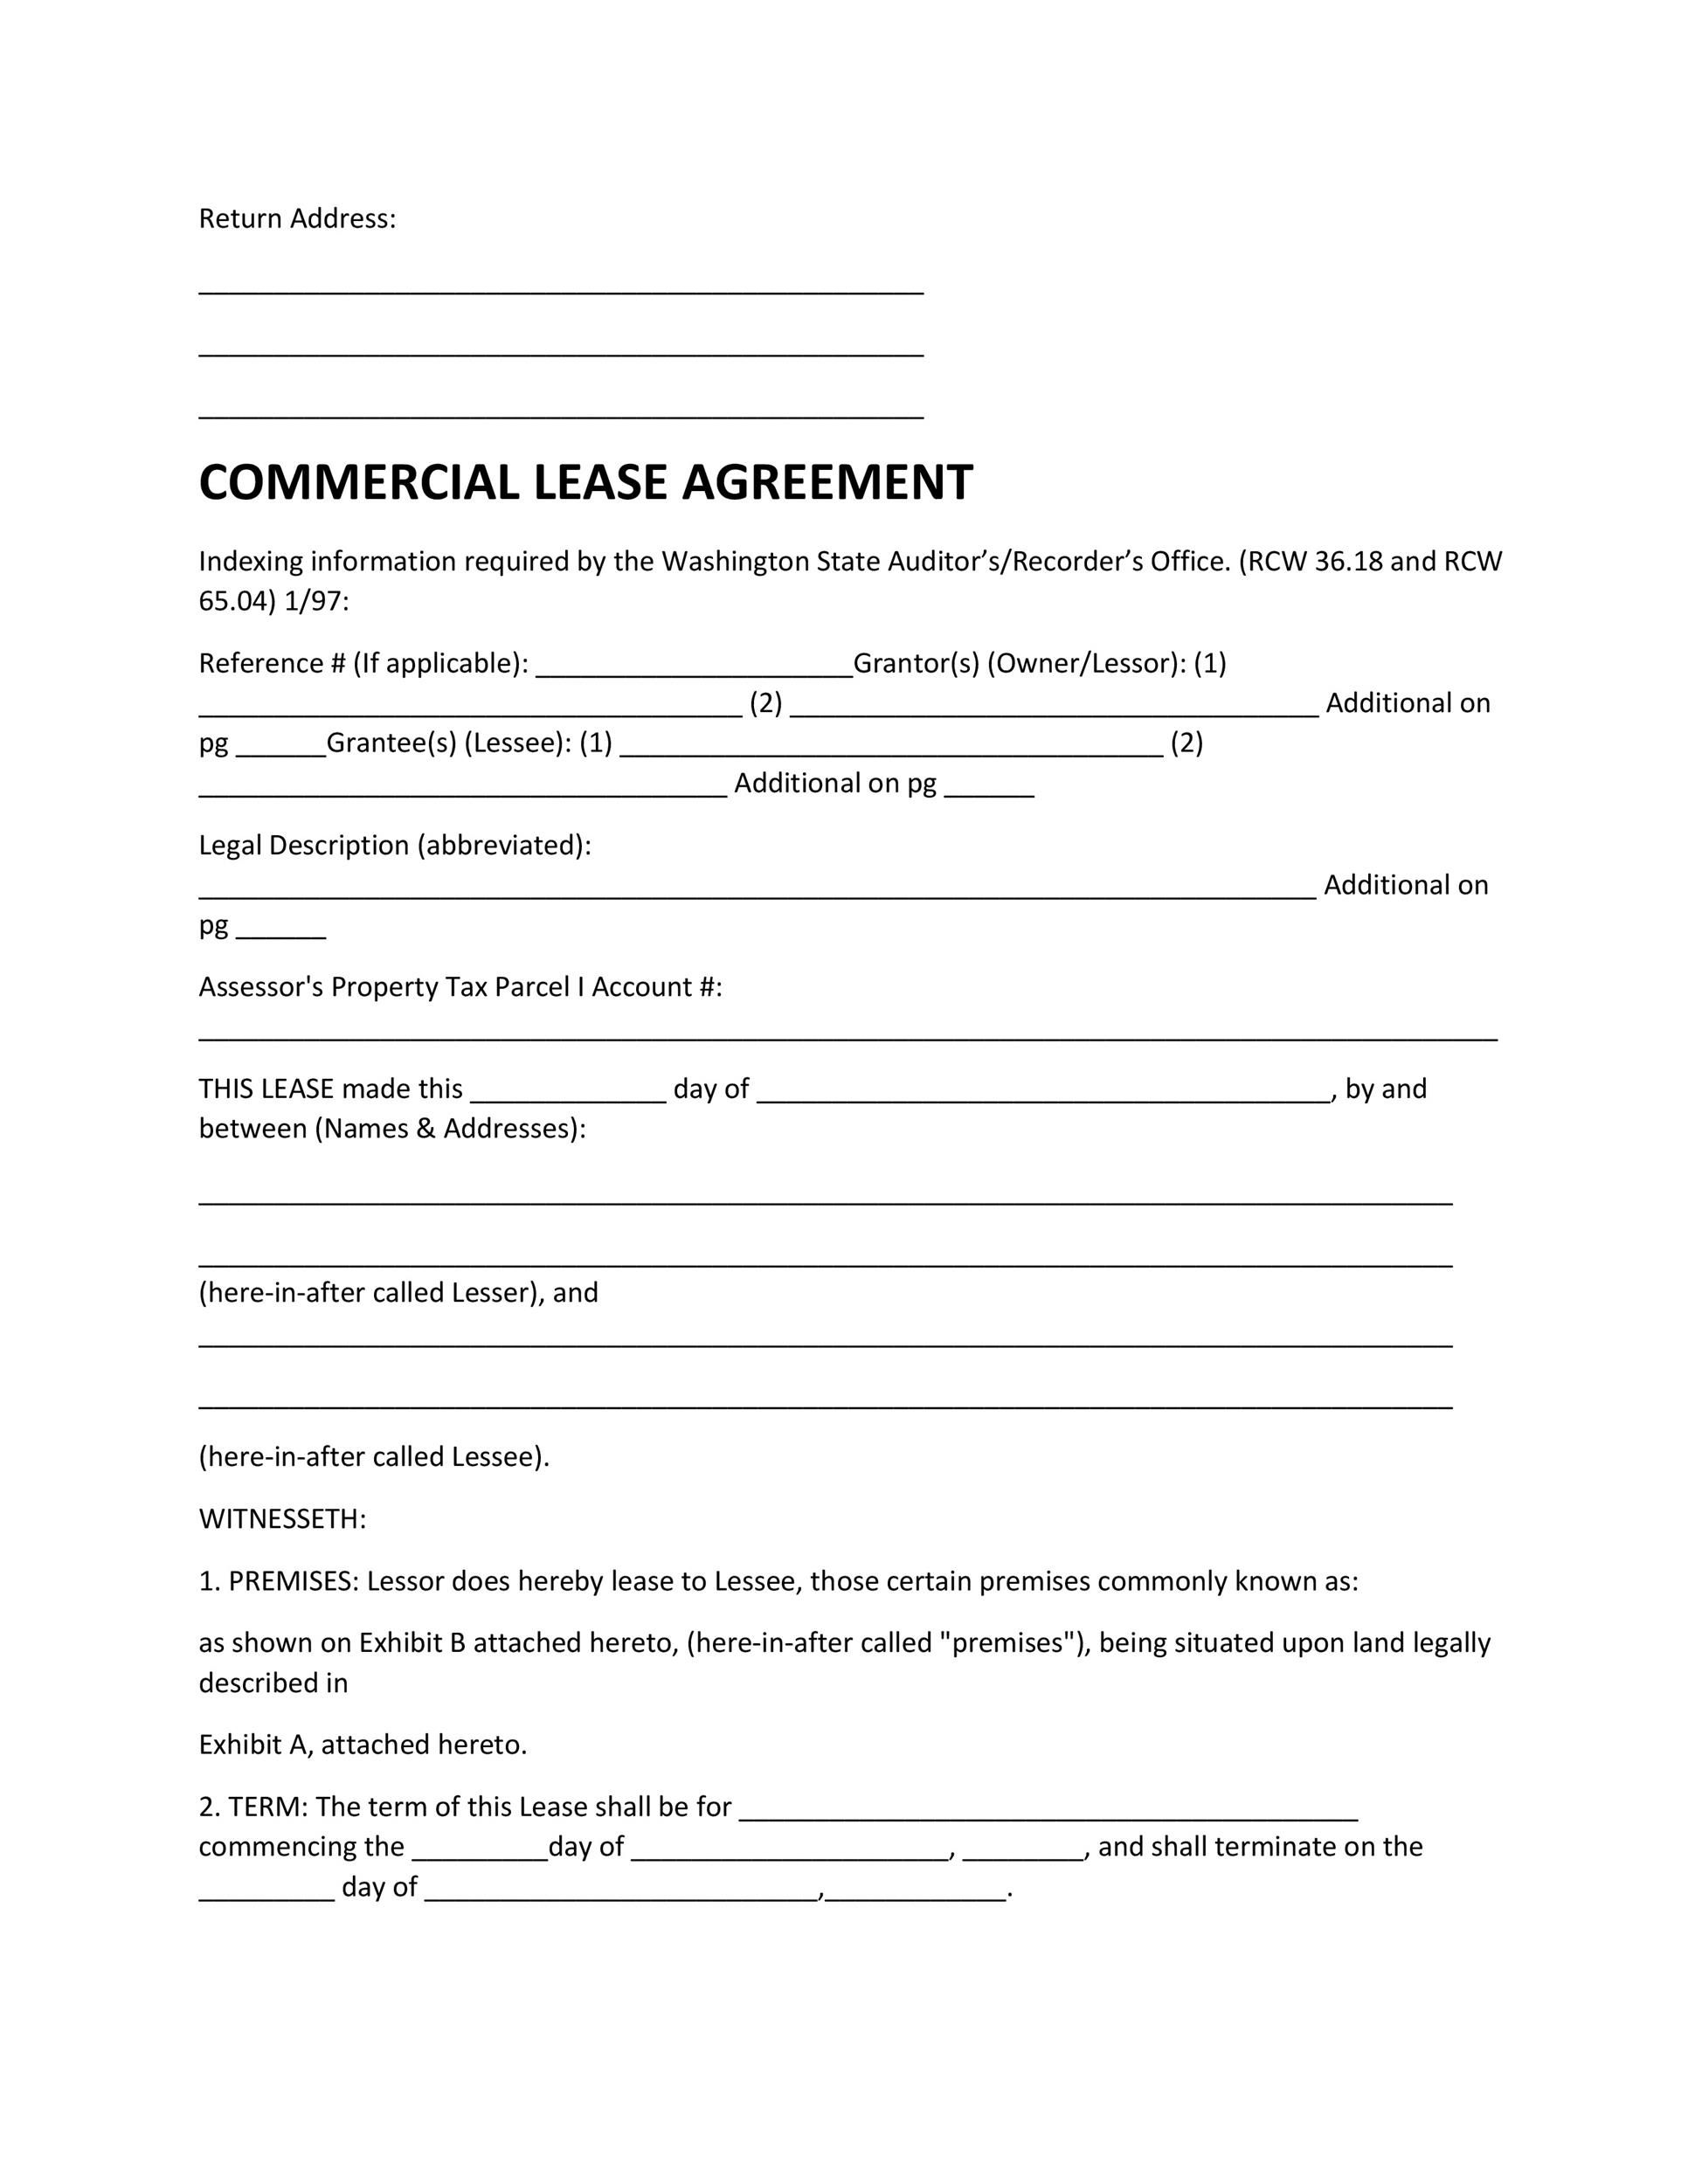 003 Shocking Free Sublease Agreement Template South Africa High Def  Simple Residential Lease Word DownloadFull